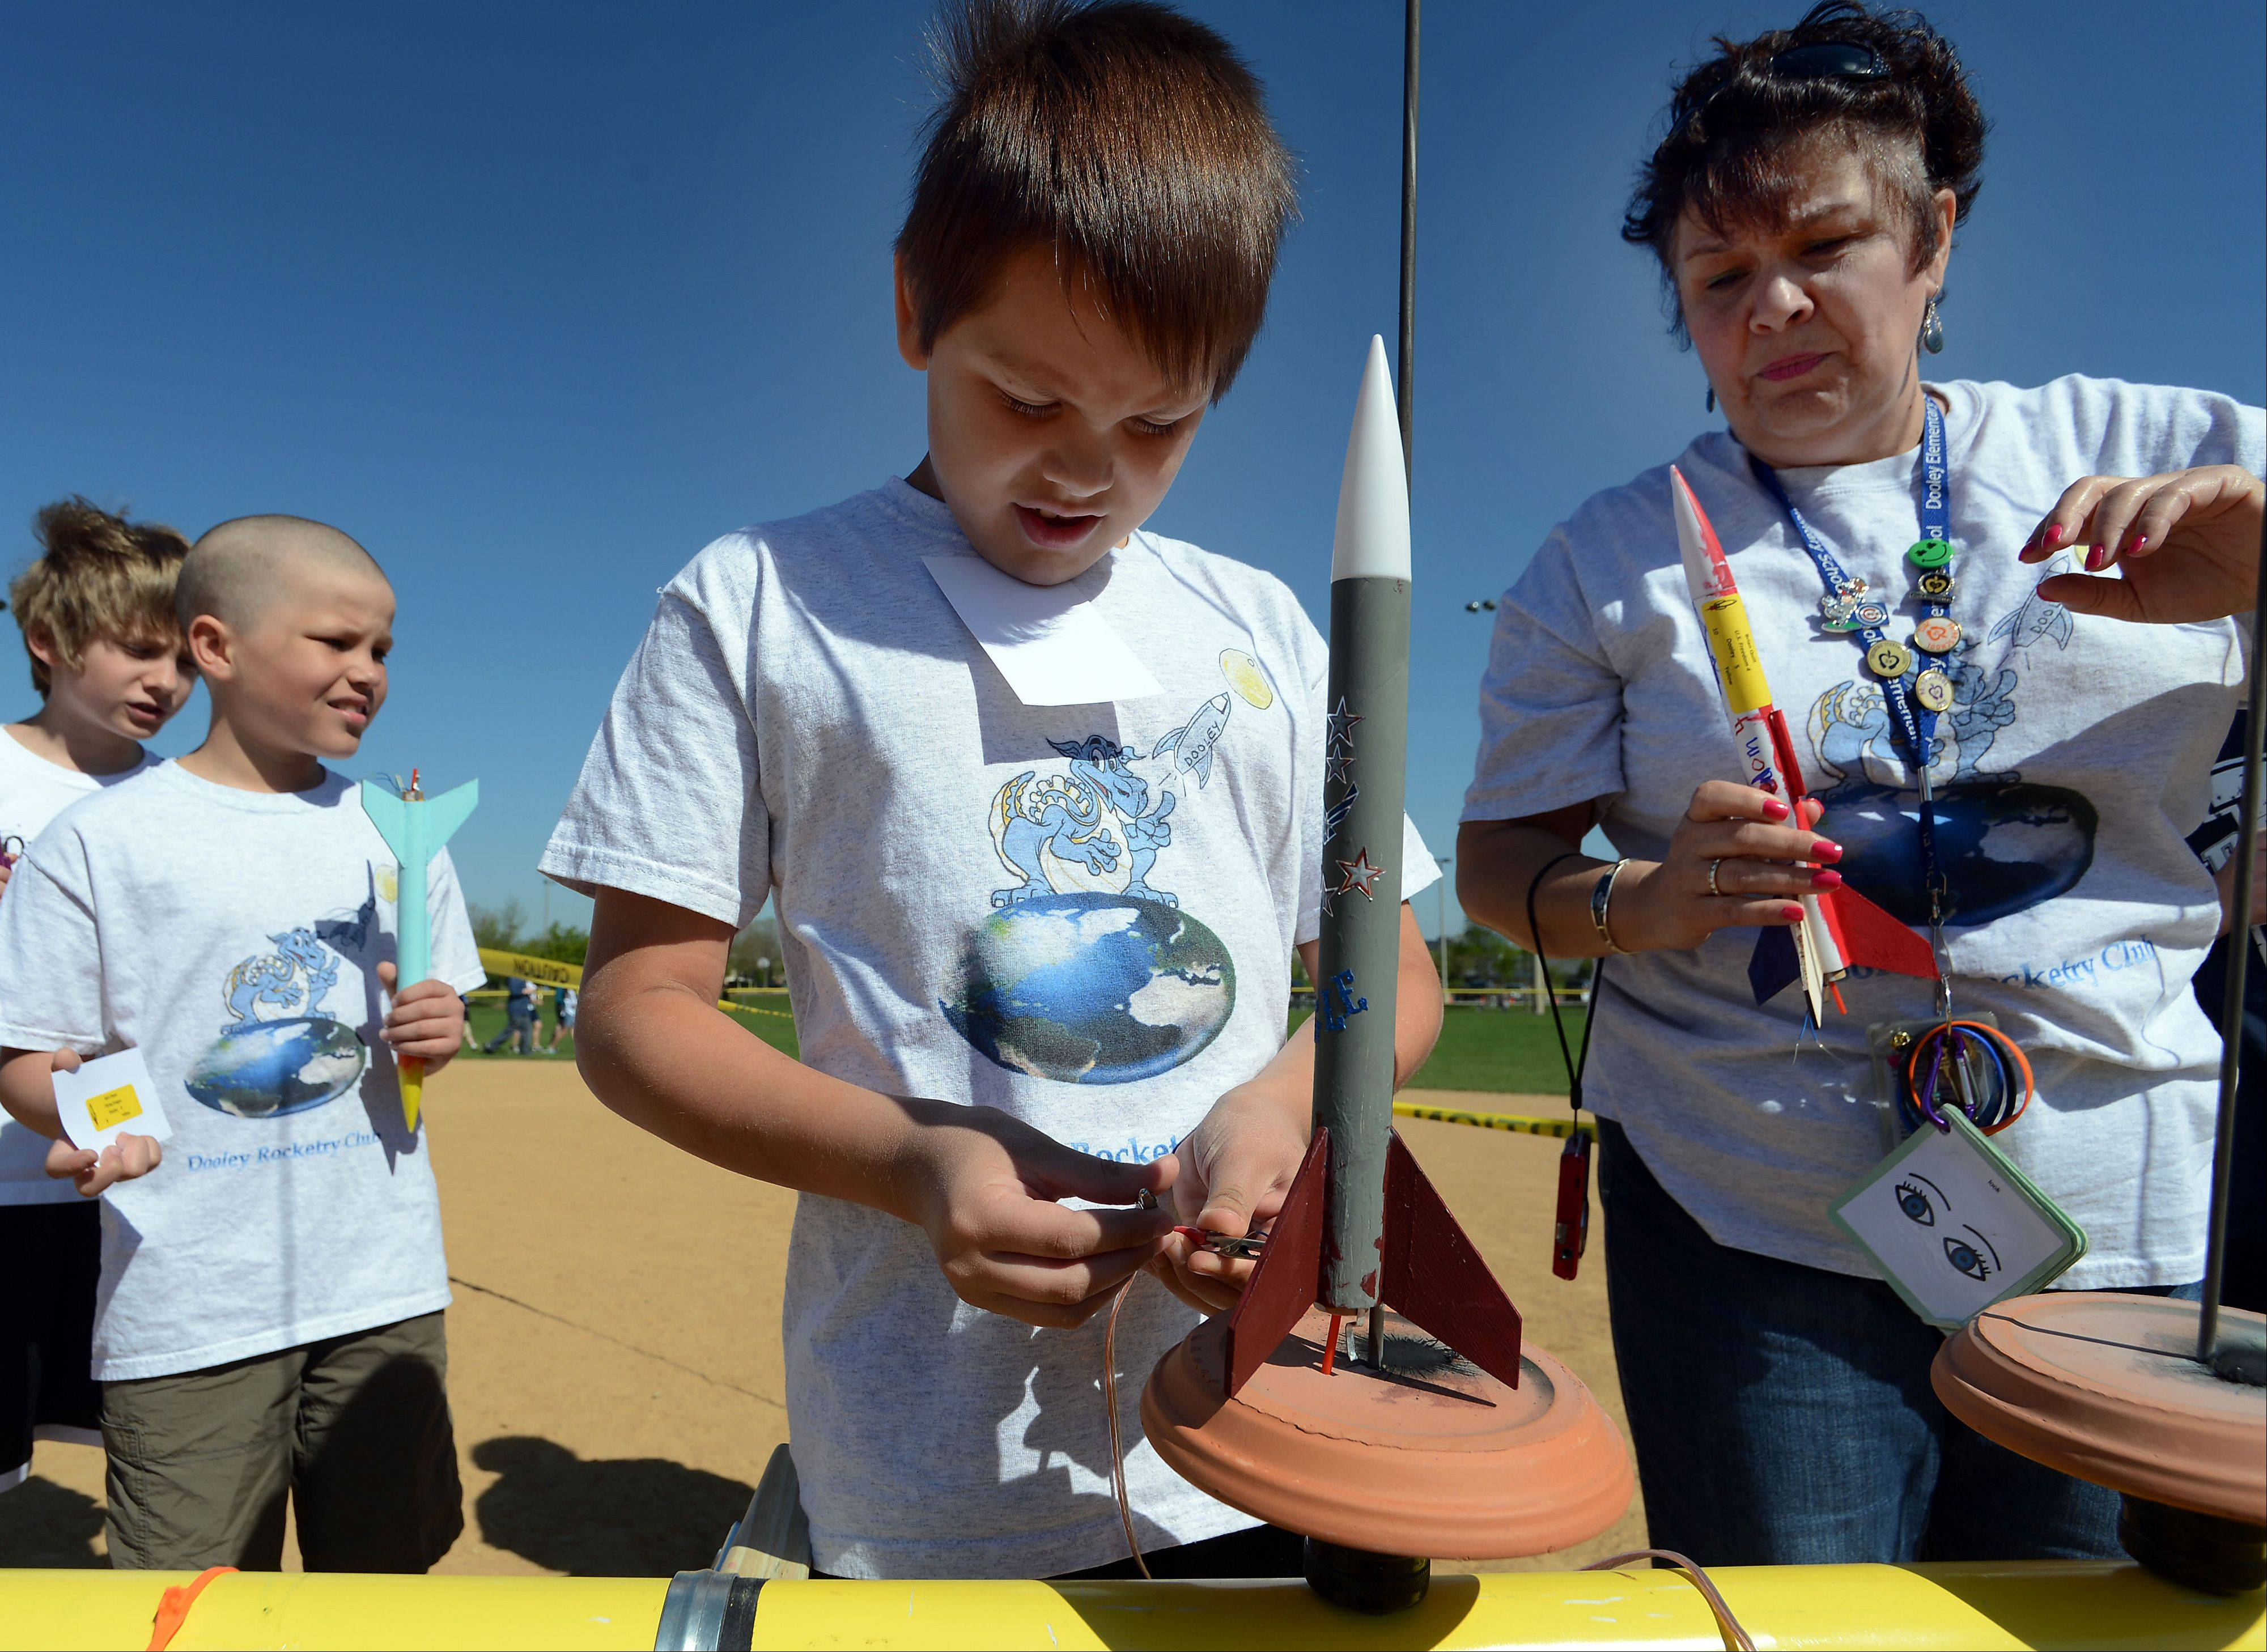 Donald McCormick, 10, in the 4th grade at Thomas Dooley Elementary School in Schaumburg, hooks up his rocket, called the Red Eagle, at Olympic Park in Schaumburg. His was just one of 450 rockets that took to the sky as part of school district 54 rocket launch day. Next to him is Joann Delmedico who was the rocketeer club facilitator on site.